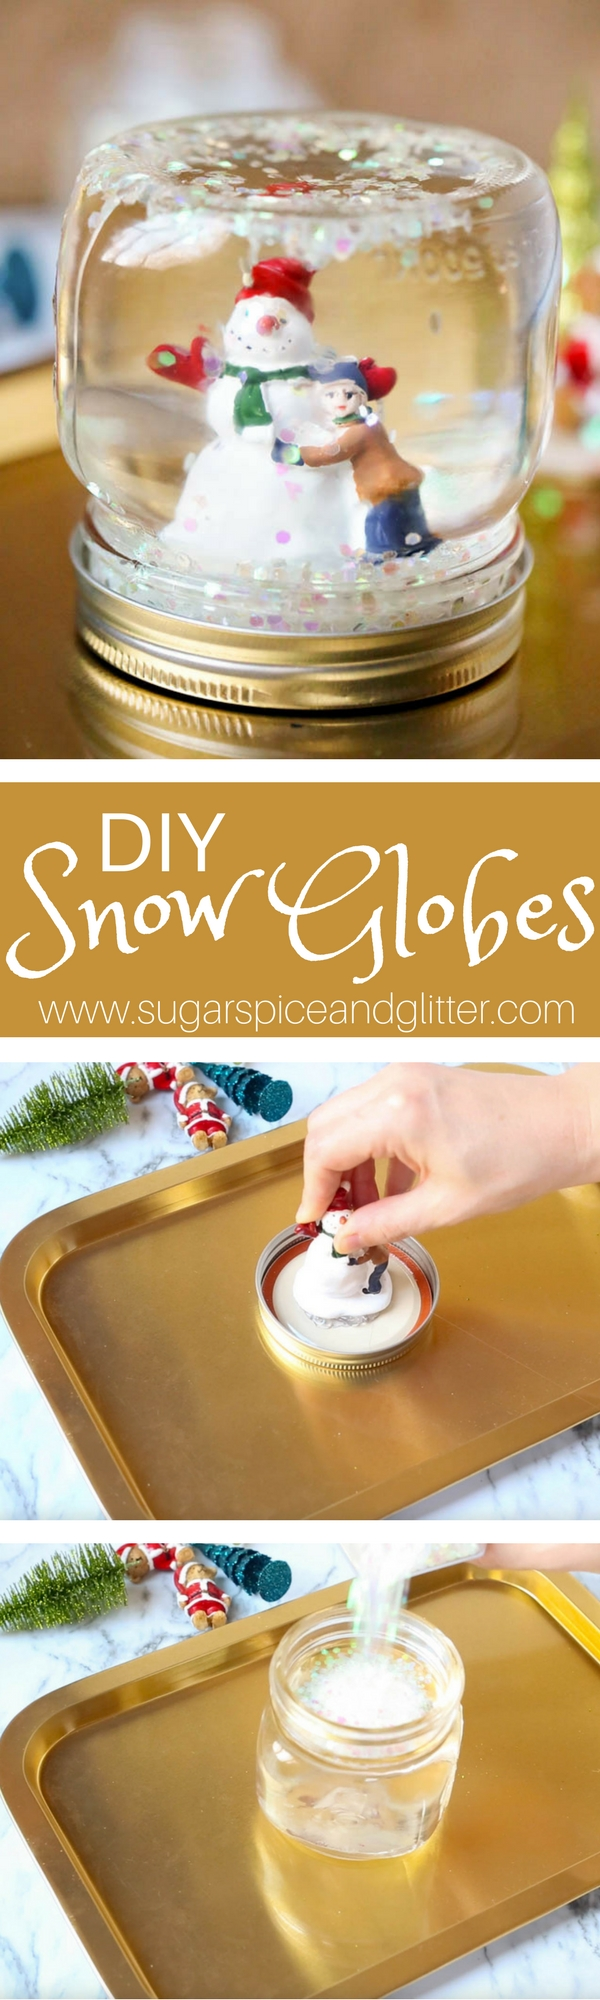 This DIY Mason Jar Snow Globe is absolutely magical craft that kids can help make! It also makes a beautiful homemade gift - customize it with favorite character figurines or travel souvenirs.